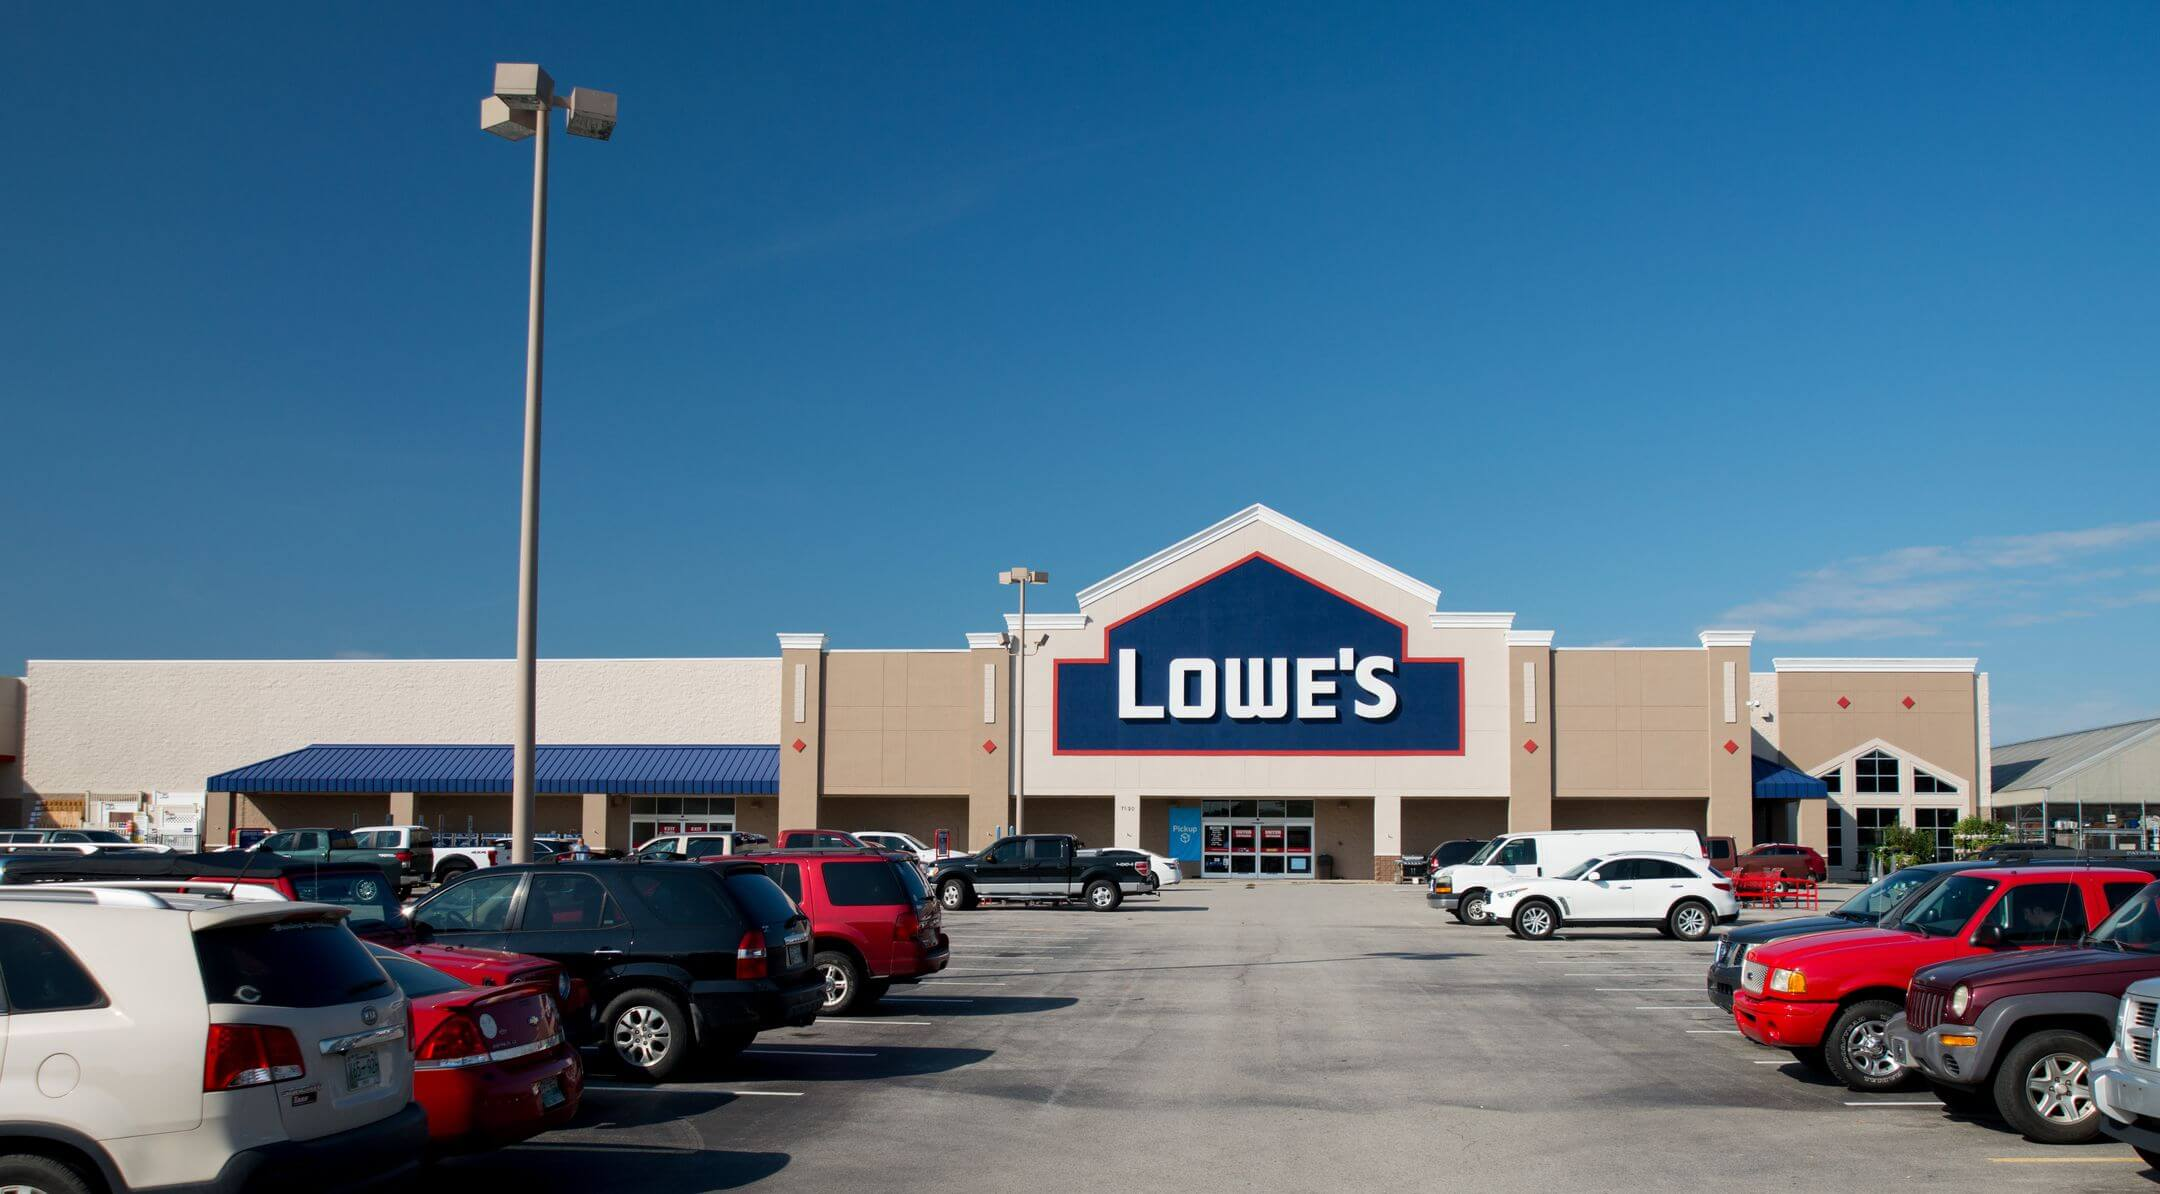 South Grove Lowes 4